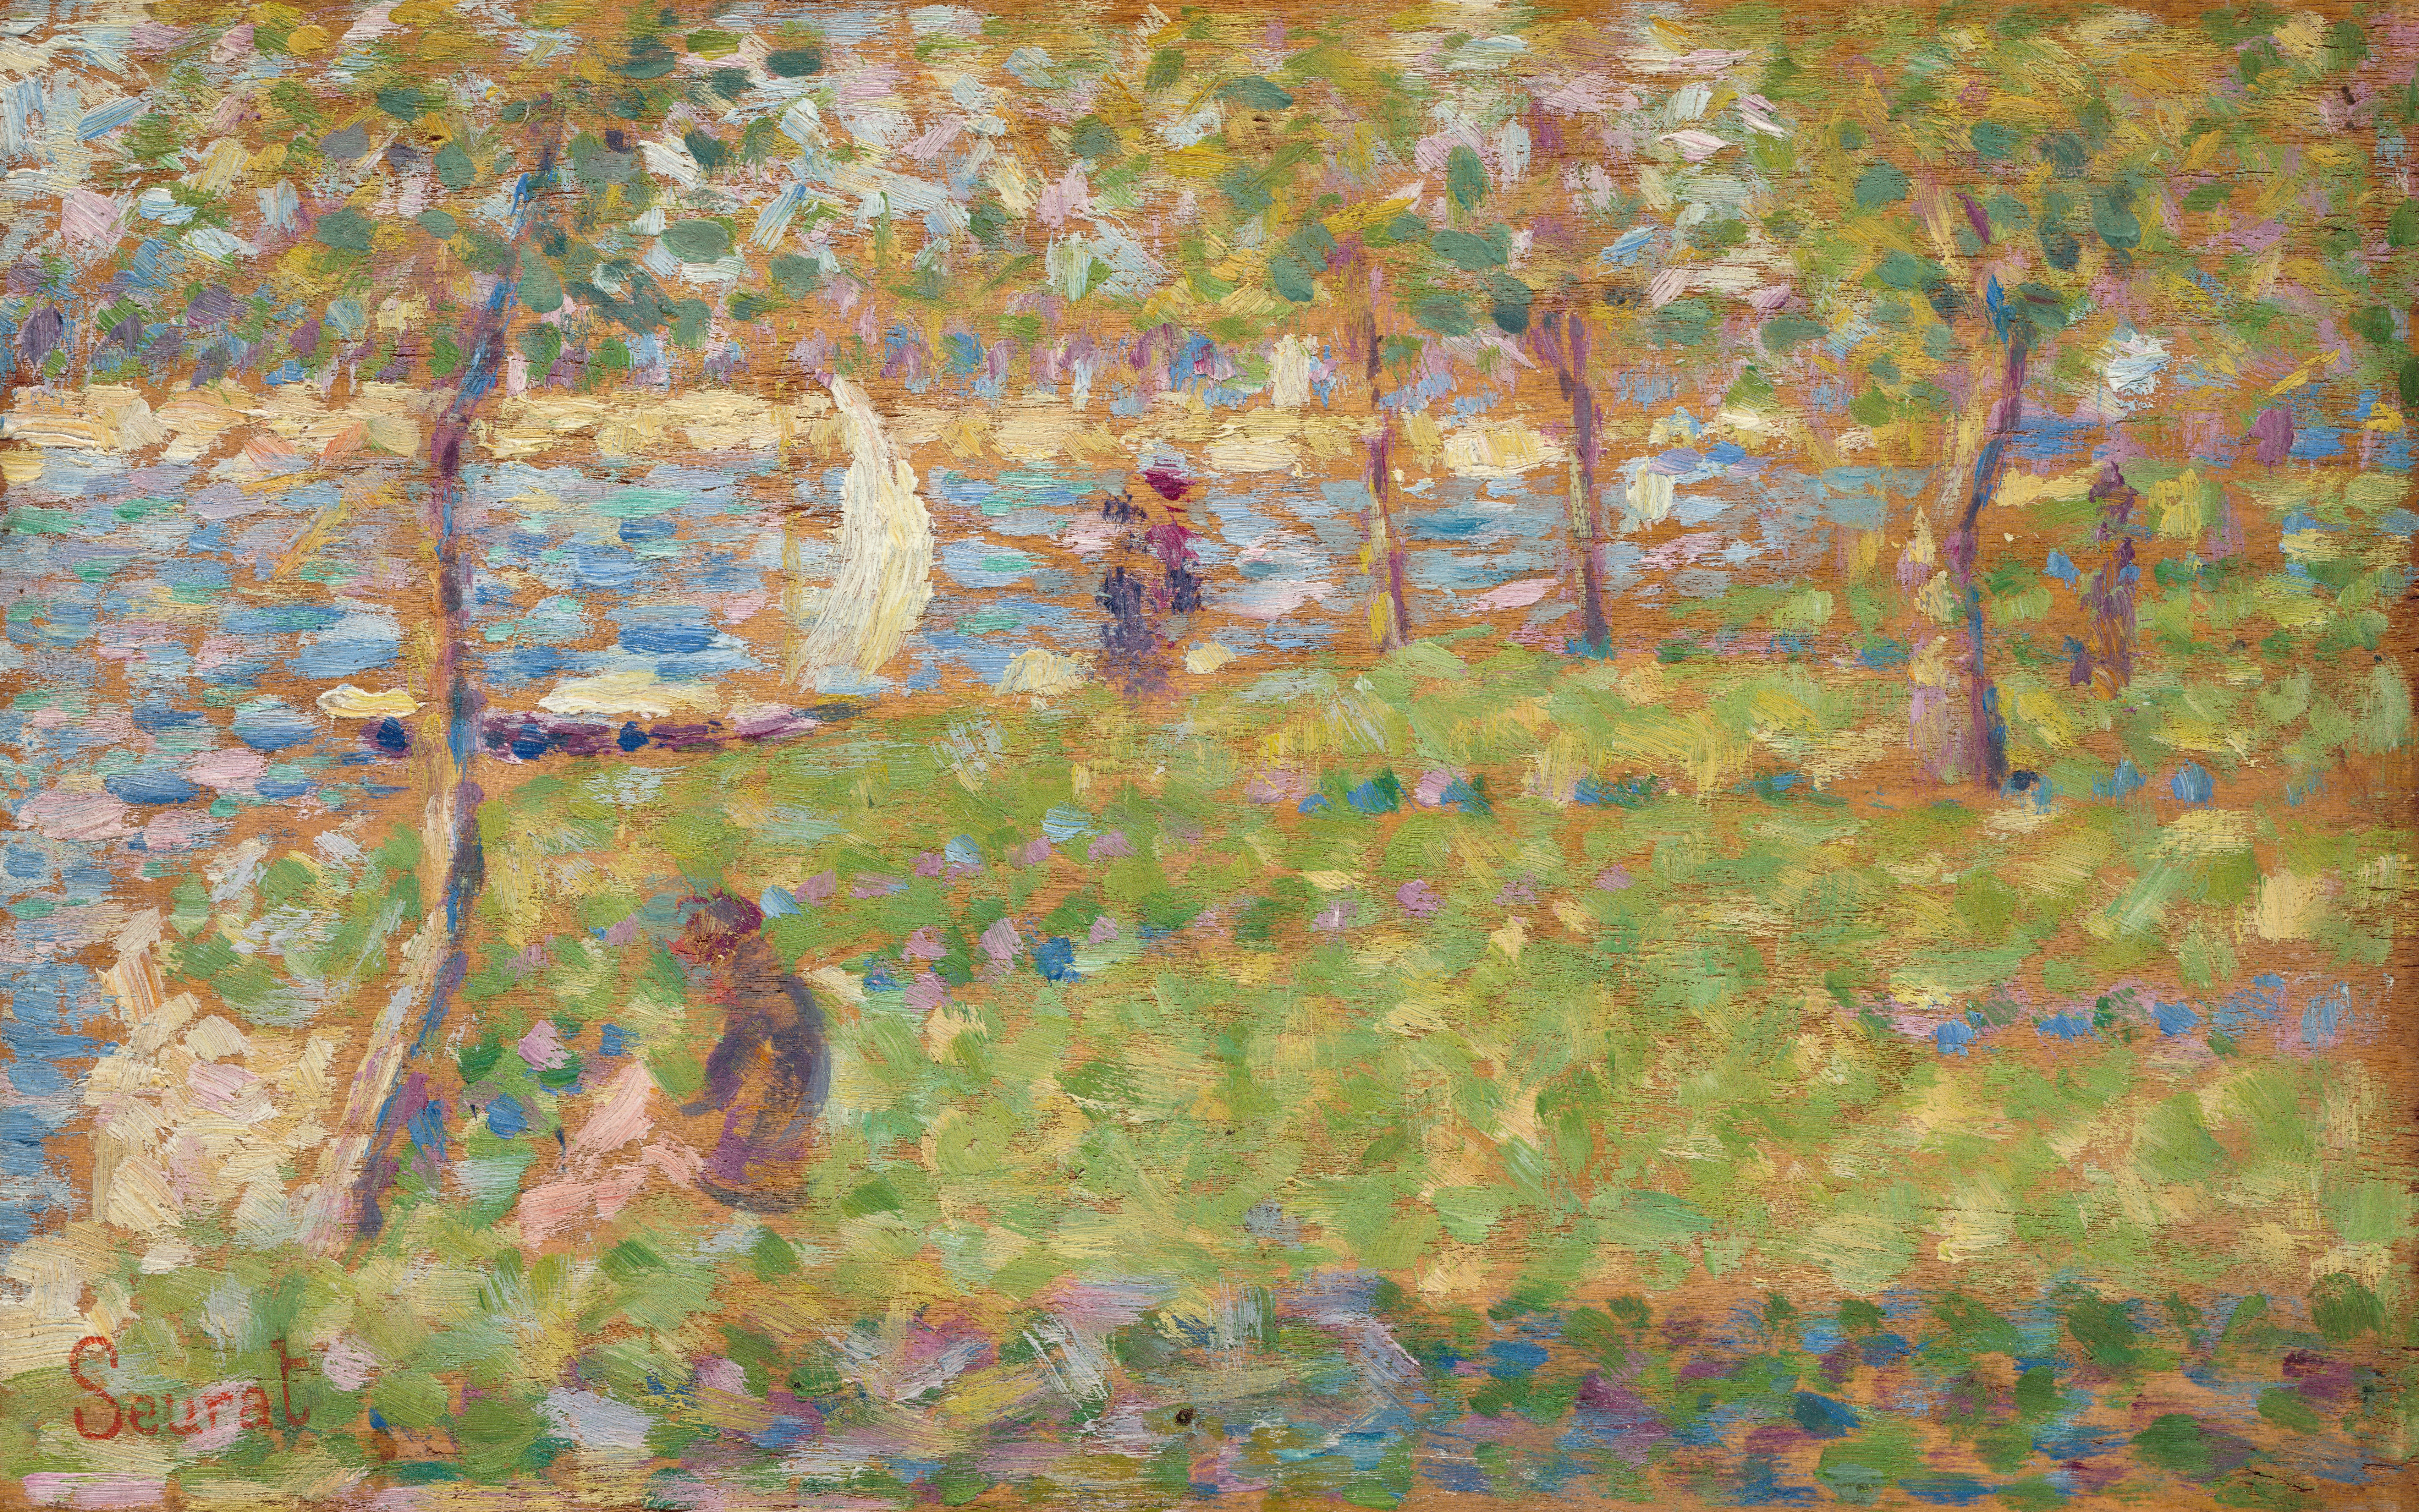 seurat sunday afternoon Handmade oil painting reproduction of sunday afternoon on the island of la grande jatte by georges seurat - brushwizcom museum quality guaranteed + free shipping.